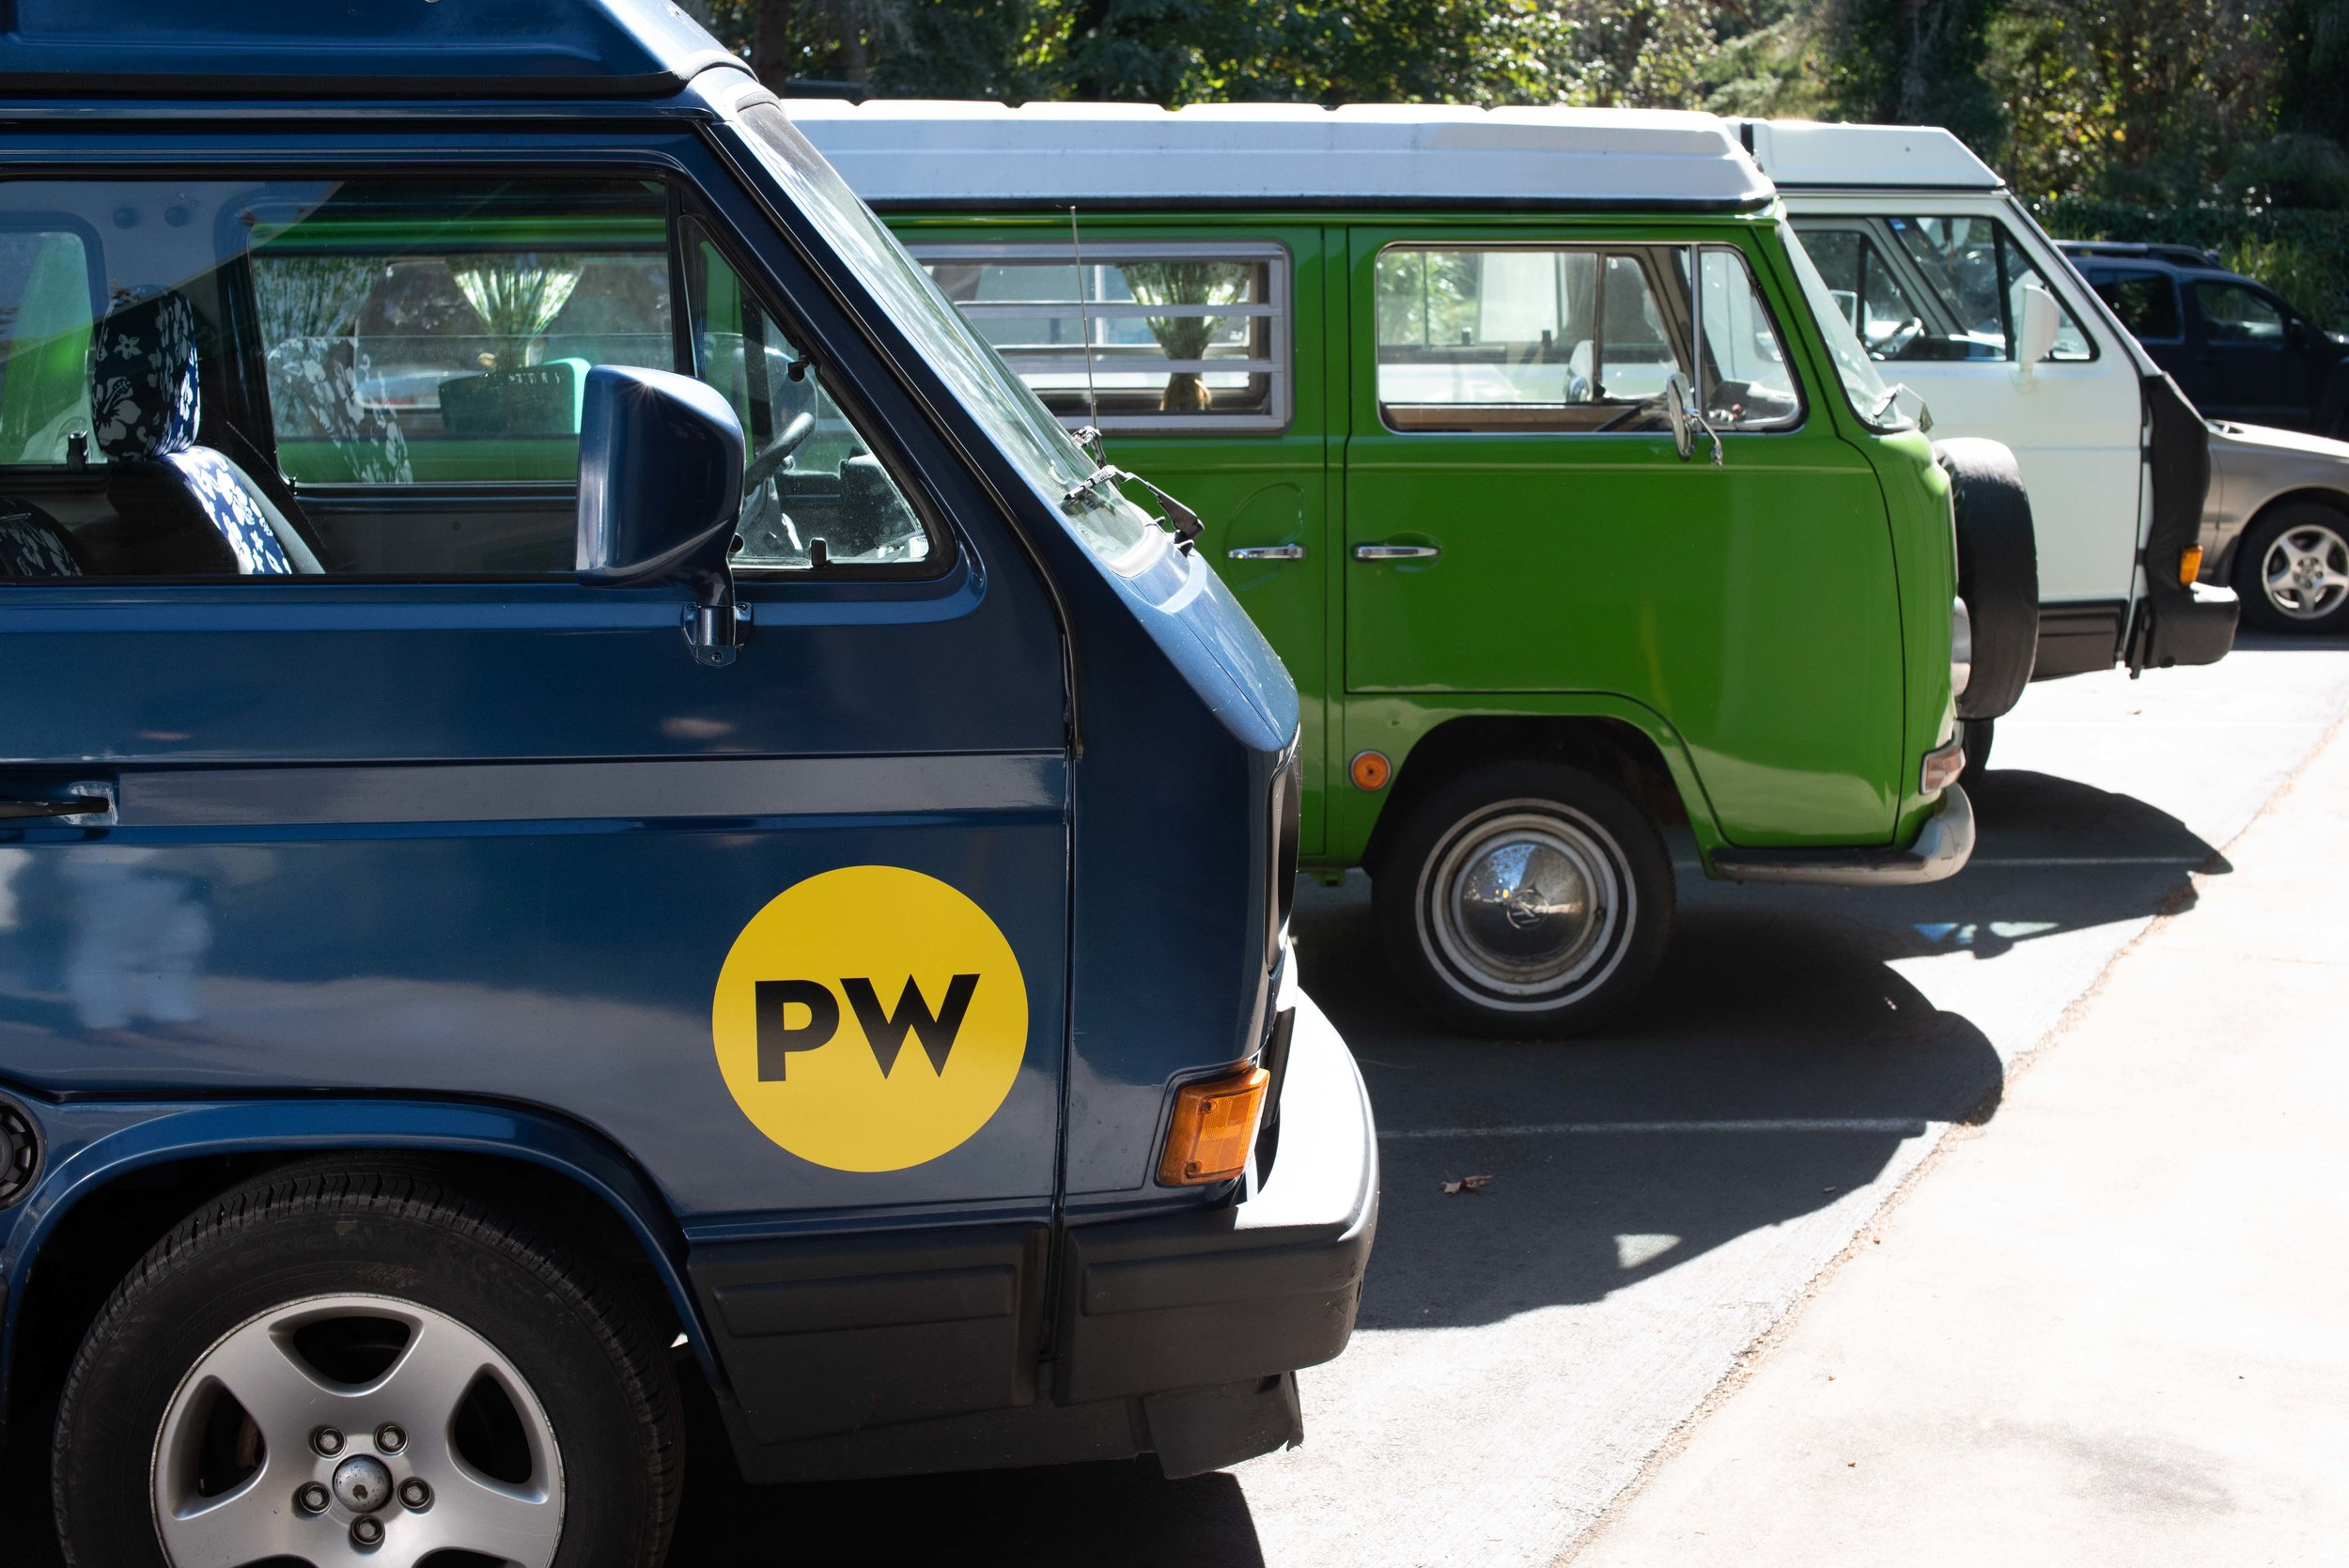 We didn't use our own car in Washington. We rented a vintage VW van from  Pacwesty .